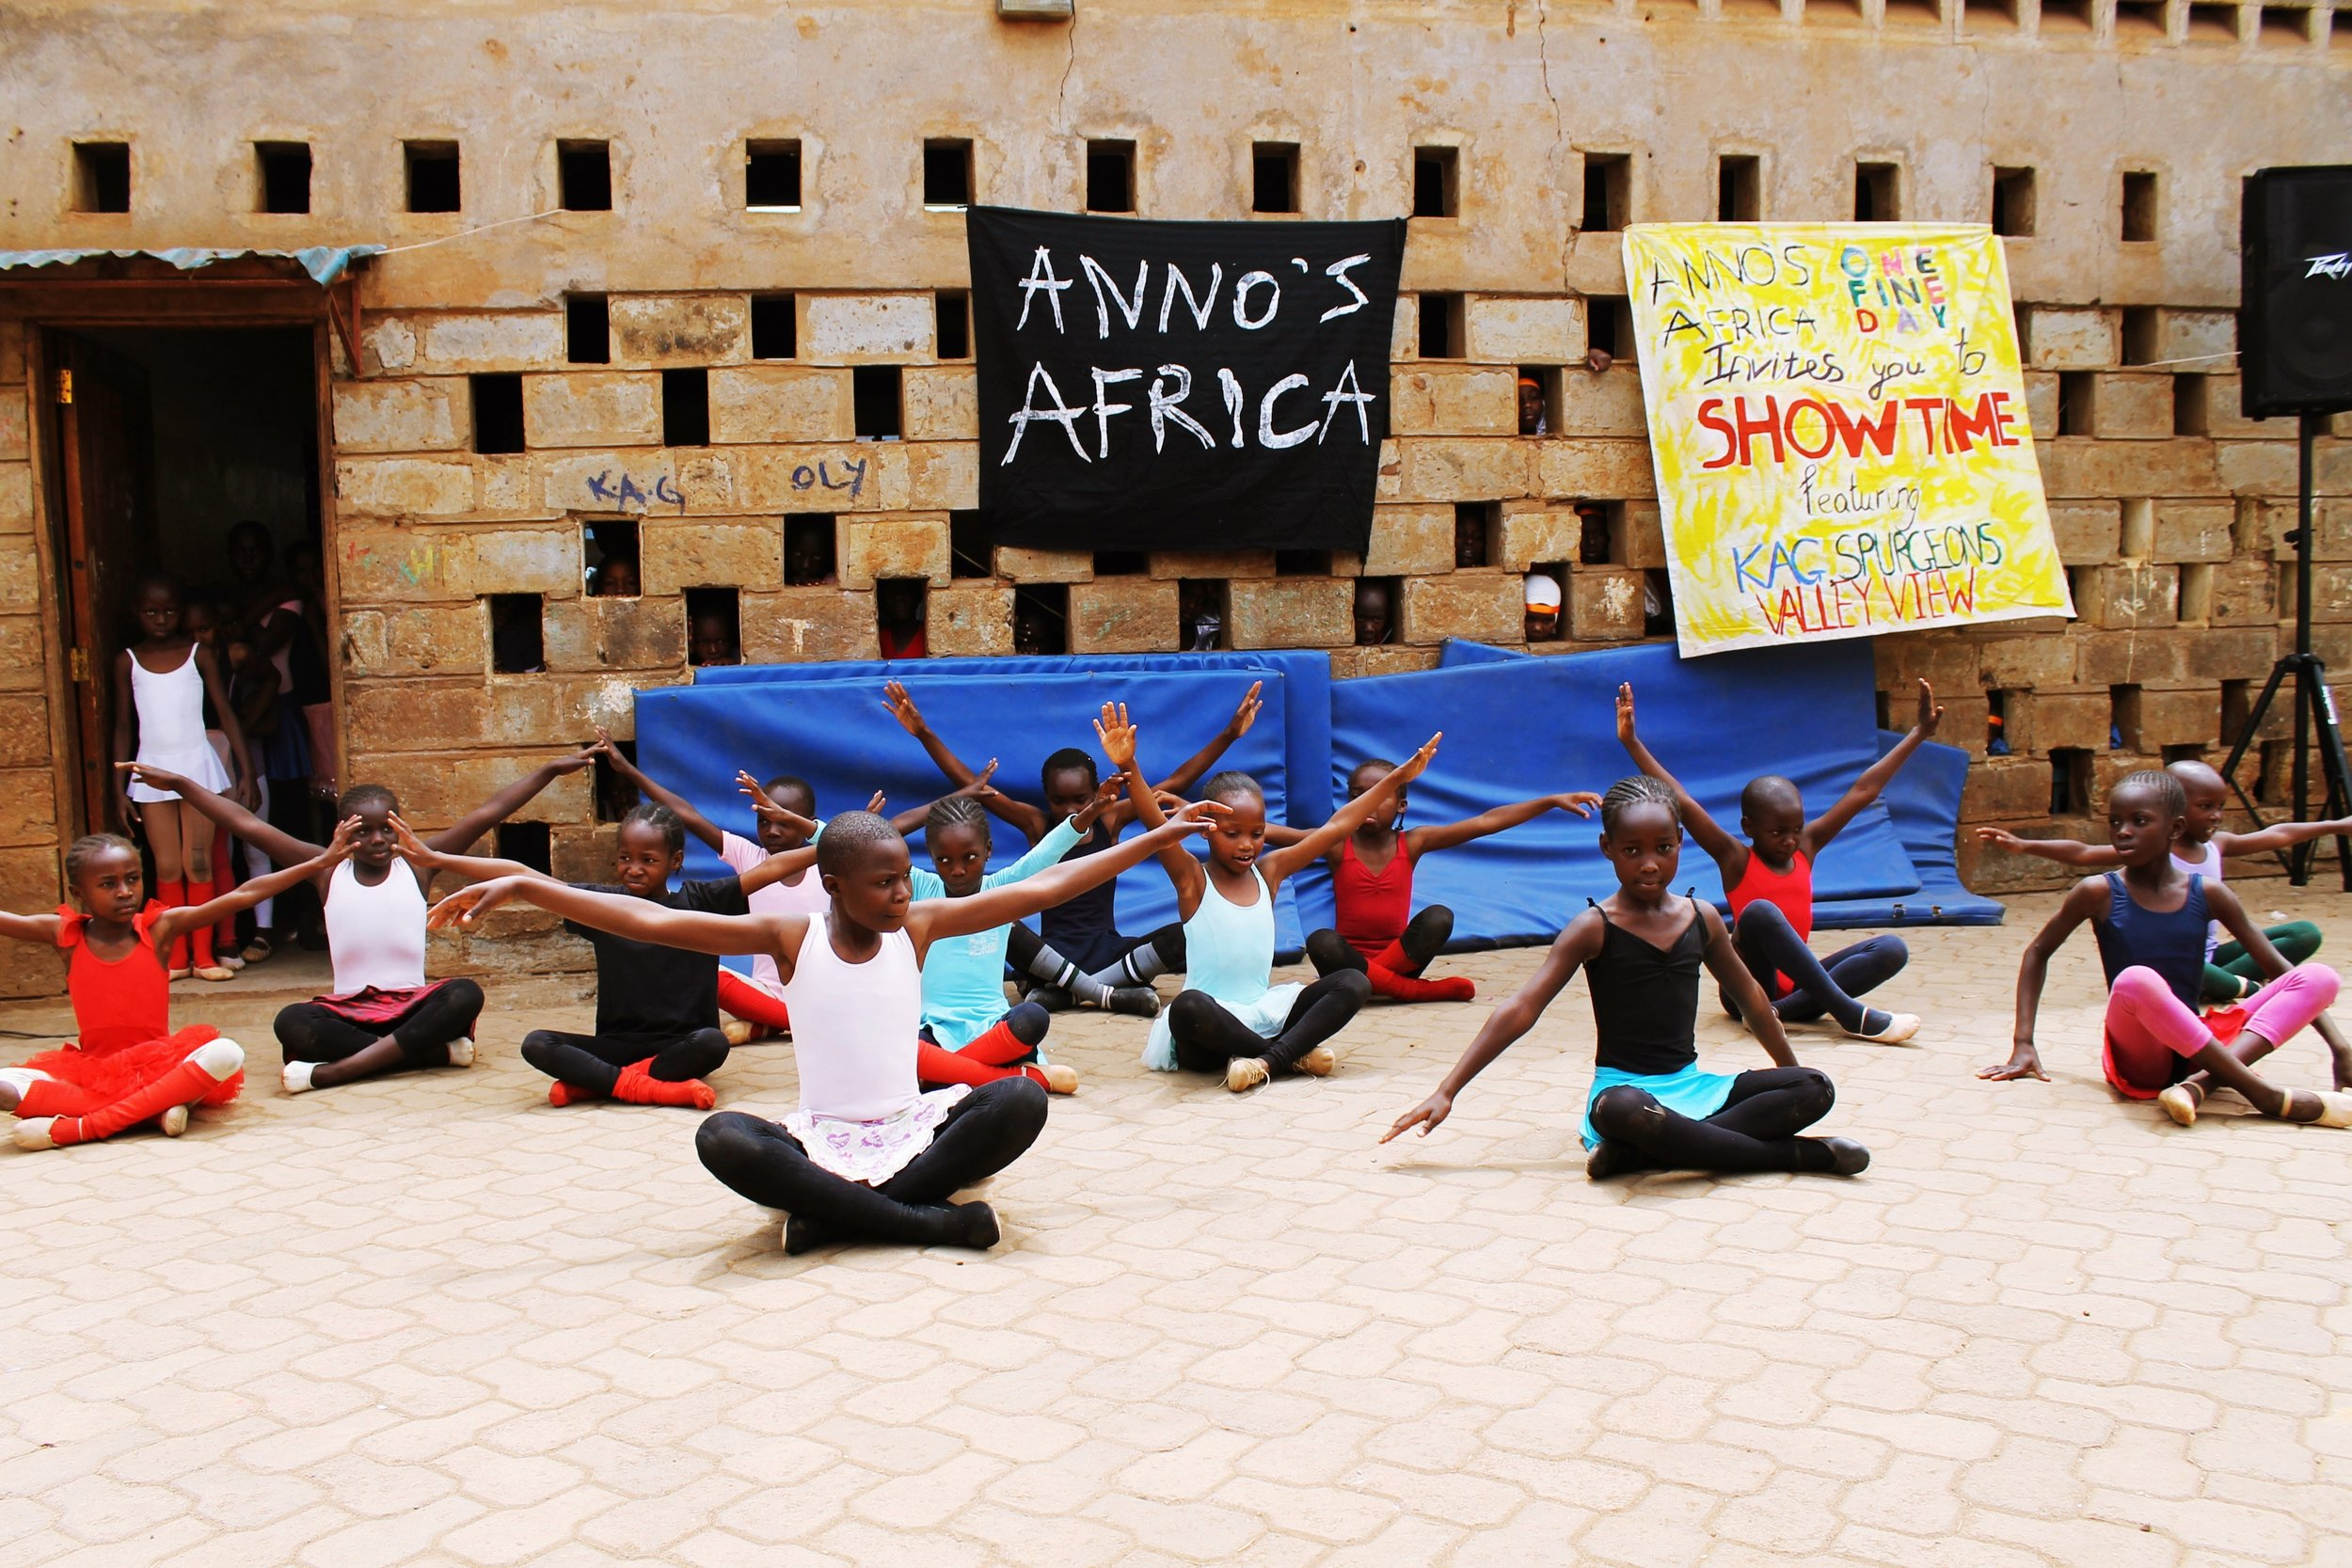 End of year shows in Nairobi - Children from two schools - KAG and Spurgeons - participated in this event in Kibera to celebrate the end of the school year. To see photographs of the performance go to Gallery page.